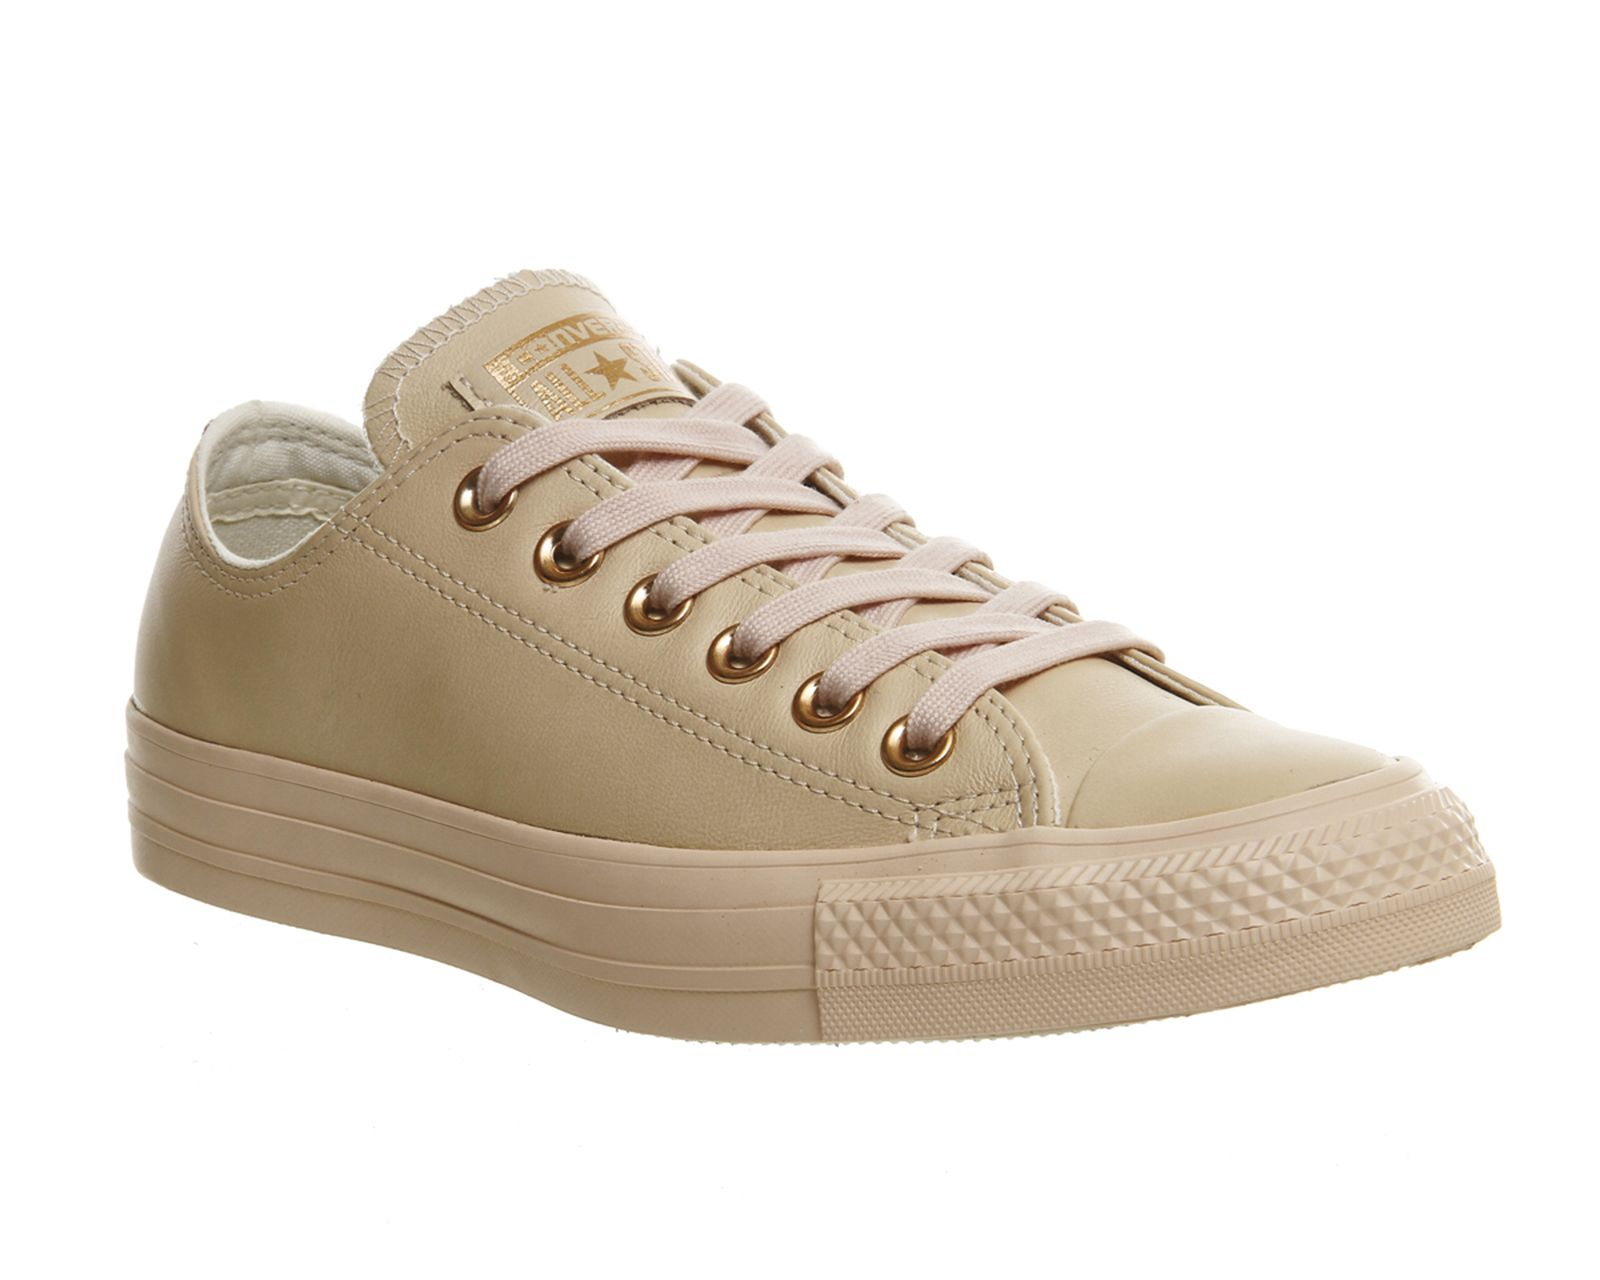 edac70e794c2 Buy Pastel Rose Tan Rose Gold Exclusive Converse All Star Low Leather from  OFFICE.co.uk.